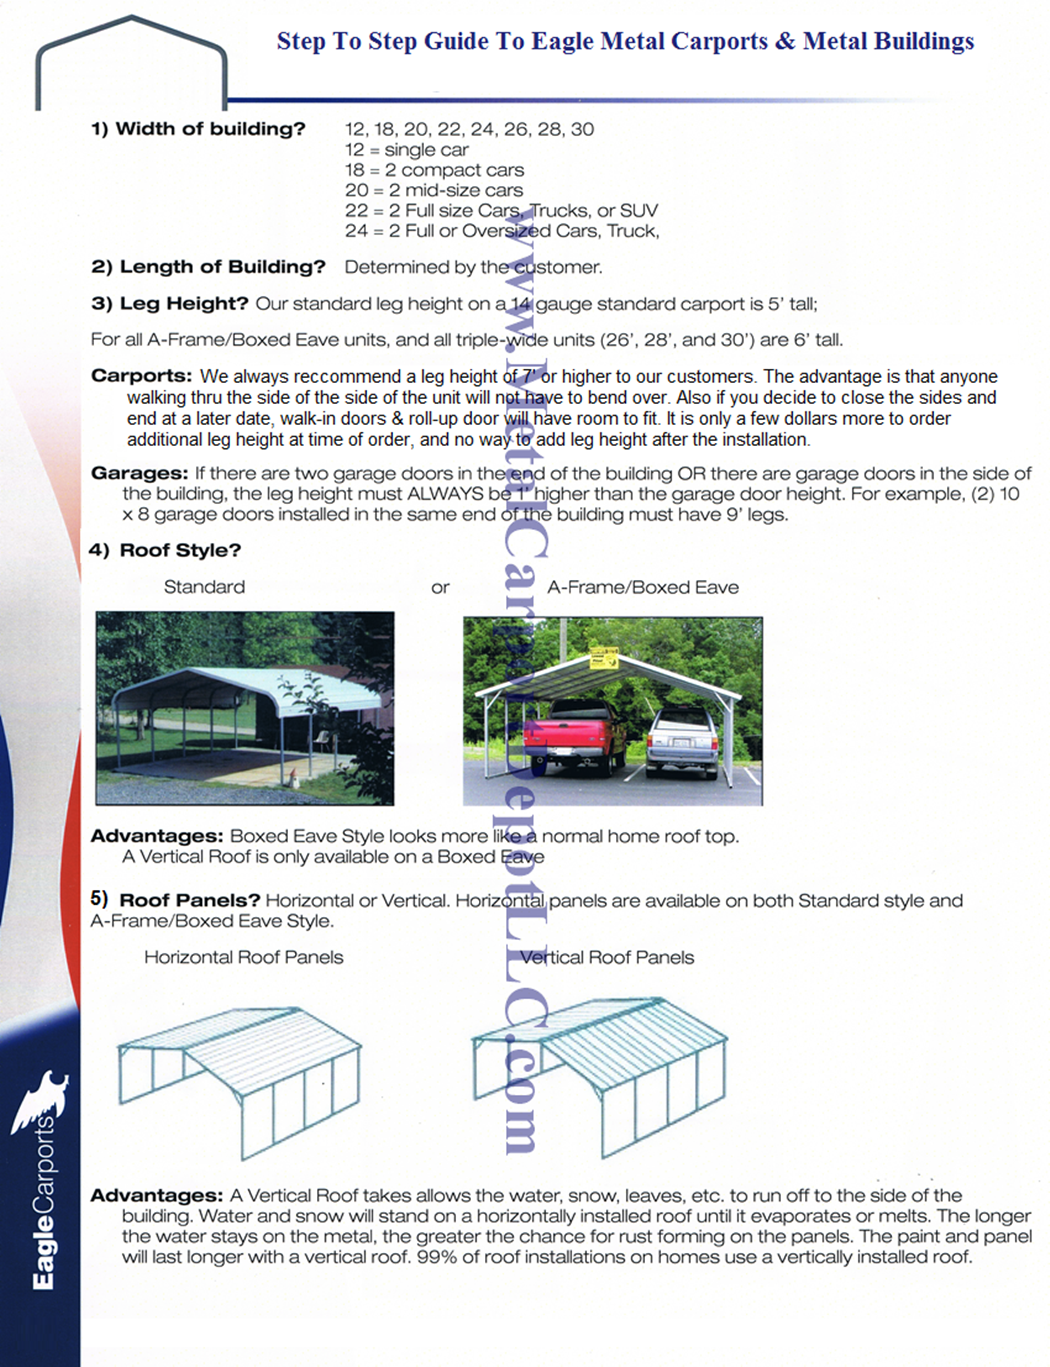 Answers to faq about metal carports metal buildings guide to metal carports metal buildings rubansaba